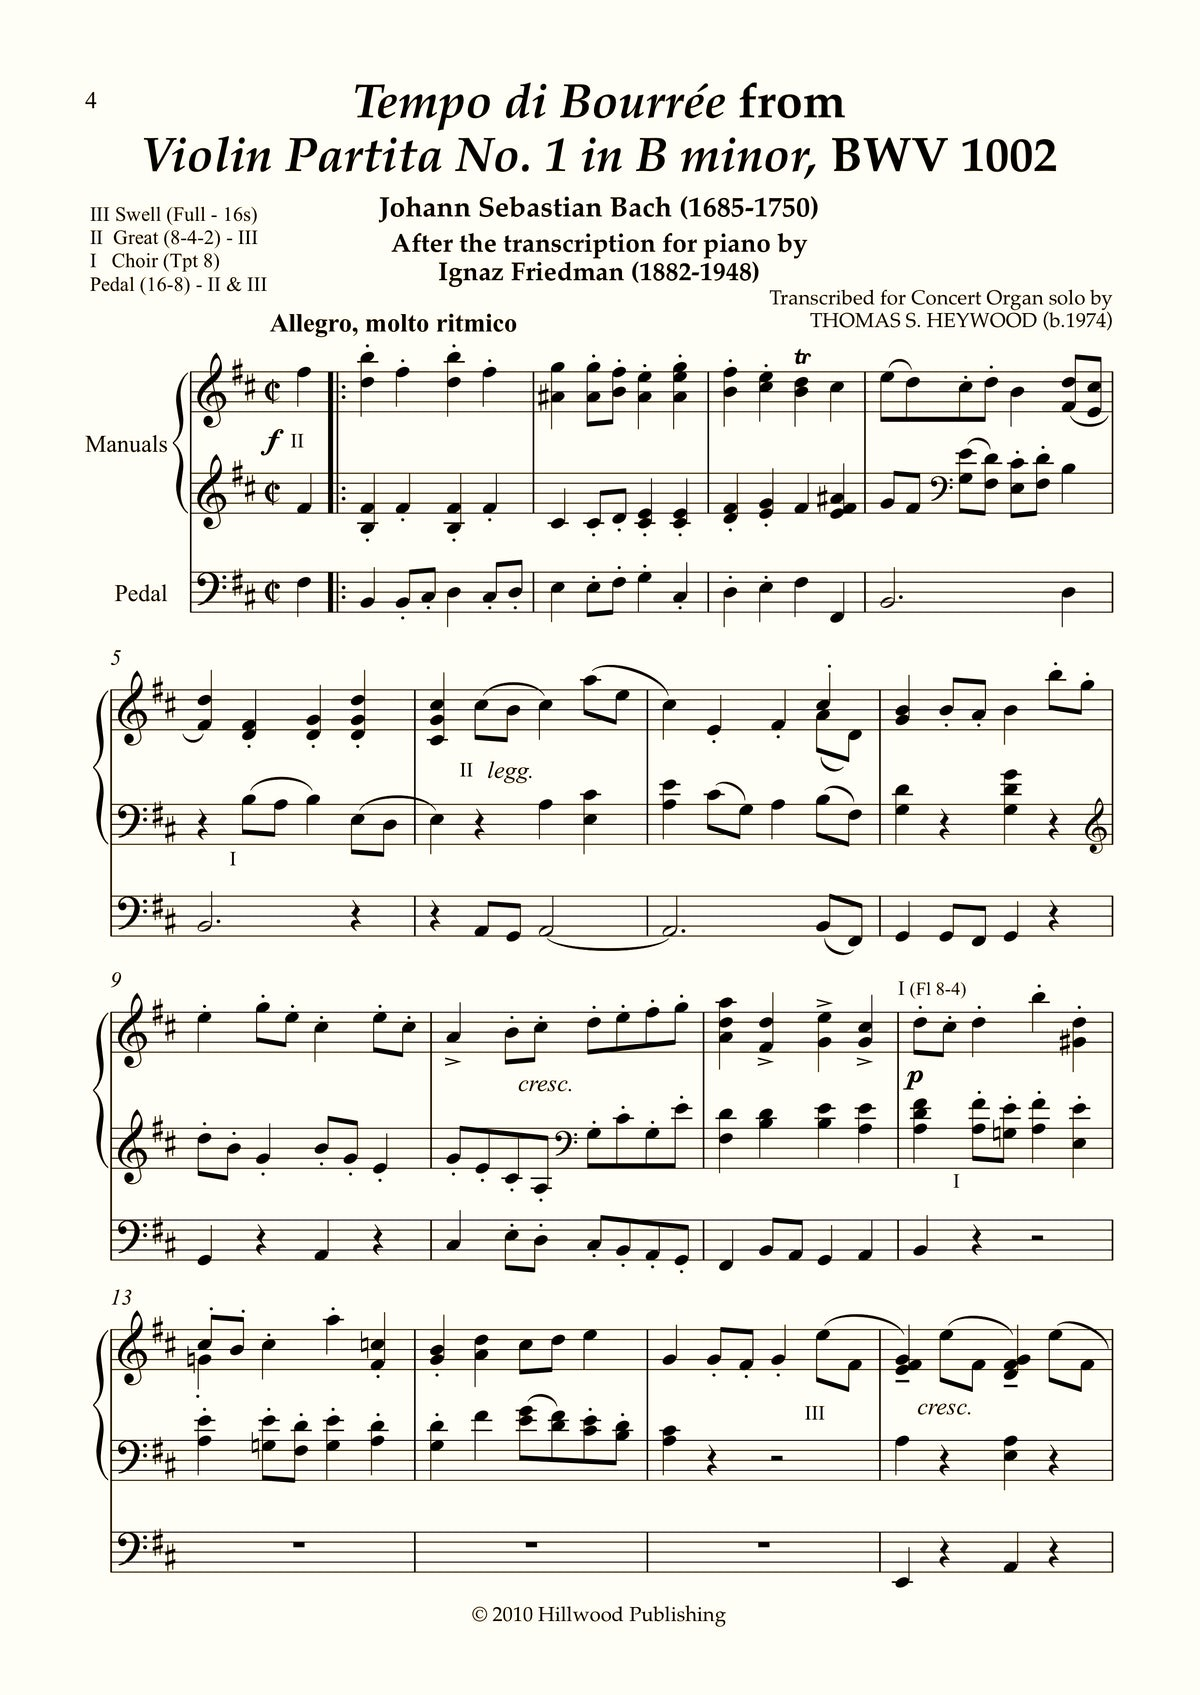 Bach/Heywood - Bourrée from Violin Partita No. 1 in B minor, BWV 1002 (Score) | Thomas Heywood | Concert Organ International